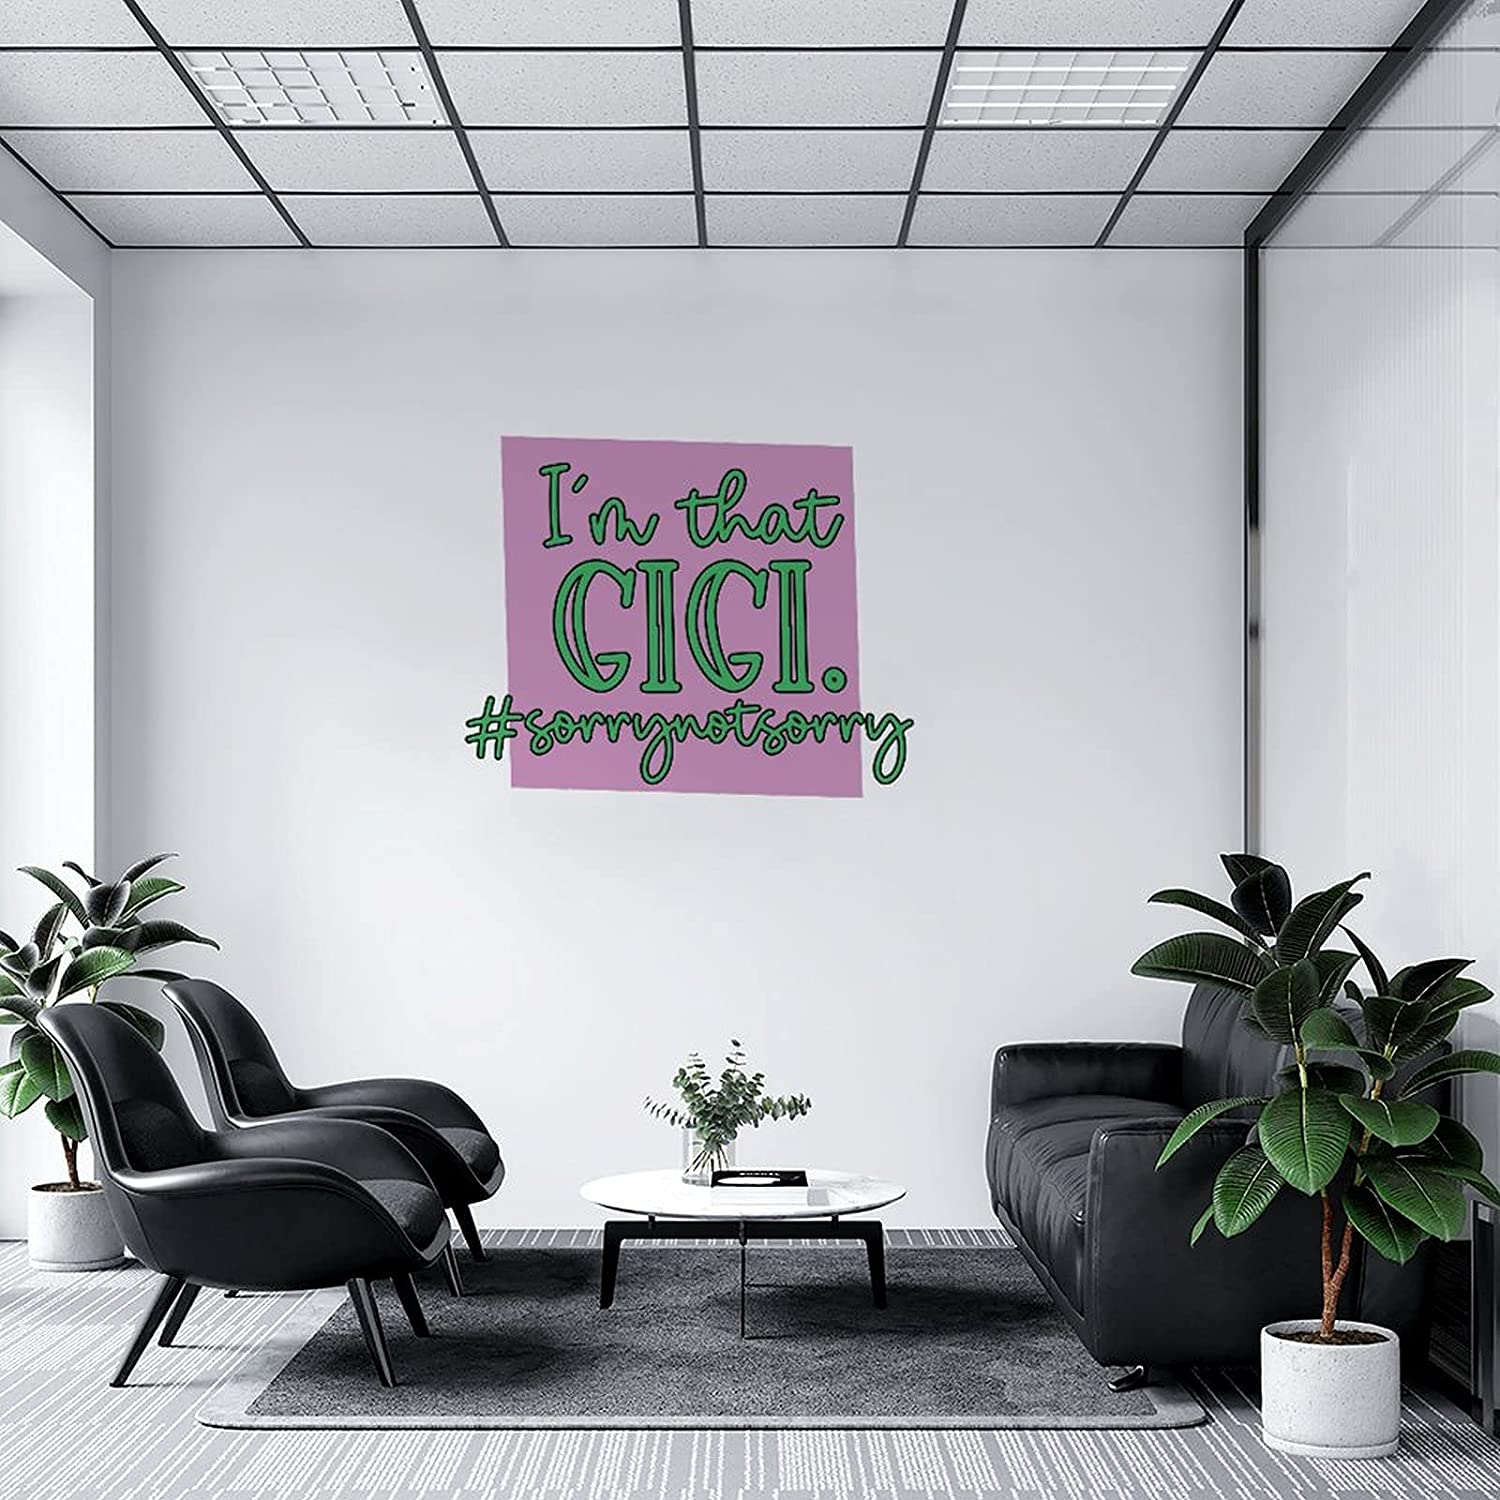 Wall Decal I'm That Gigi Mural Overseas parallel import regular Manufacturer direct delivery item Not Stick Sorry